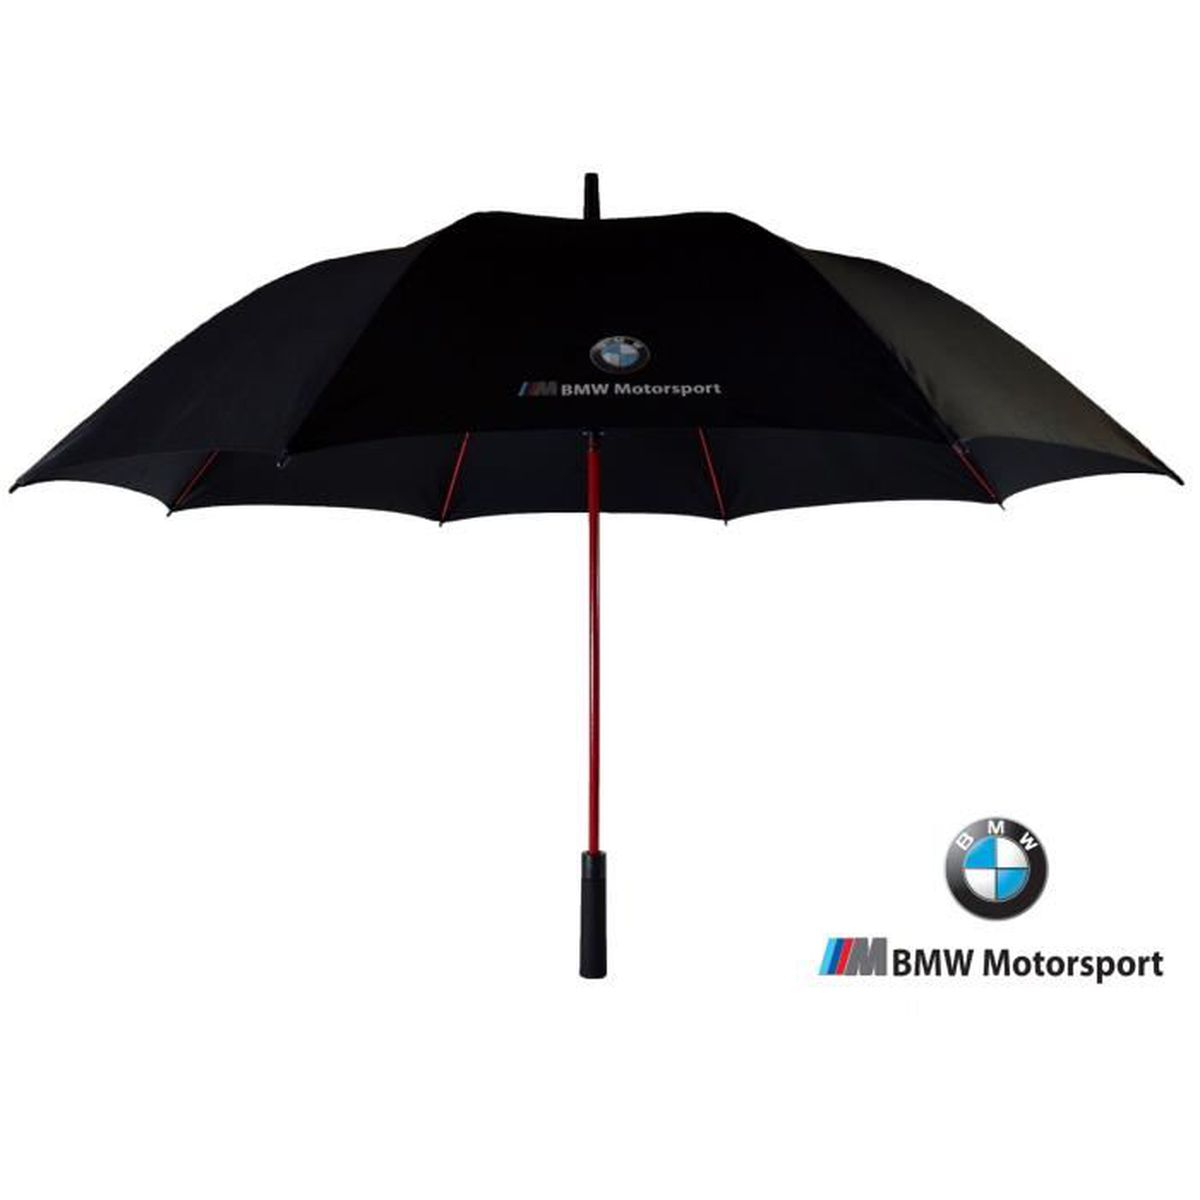 parapluie bmw premium qualit golf straight grande taille ultra r sistant au vent anti. Black Bedroom Furniture Sets. Home Design Ideas